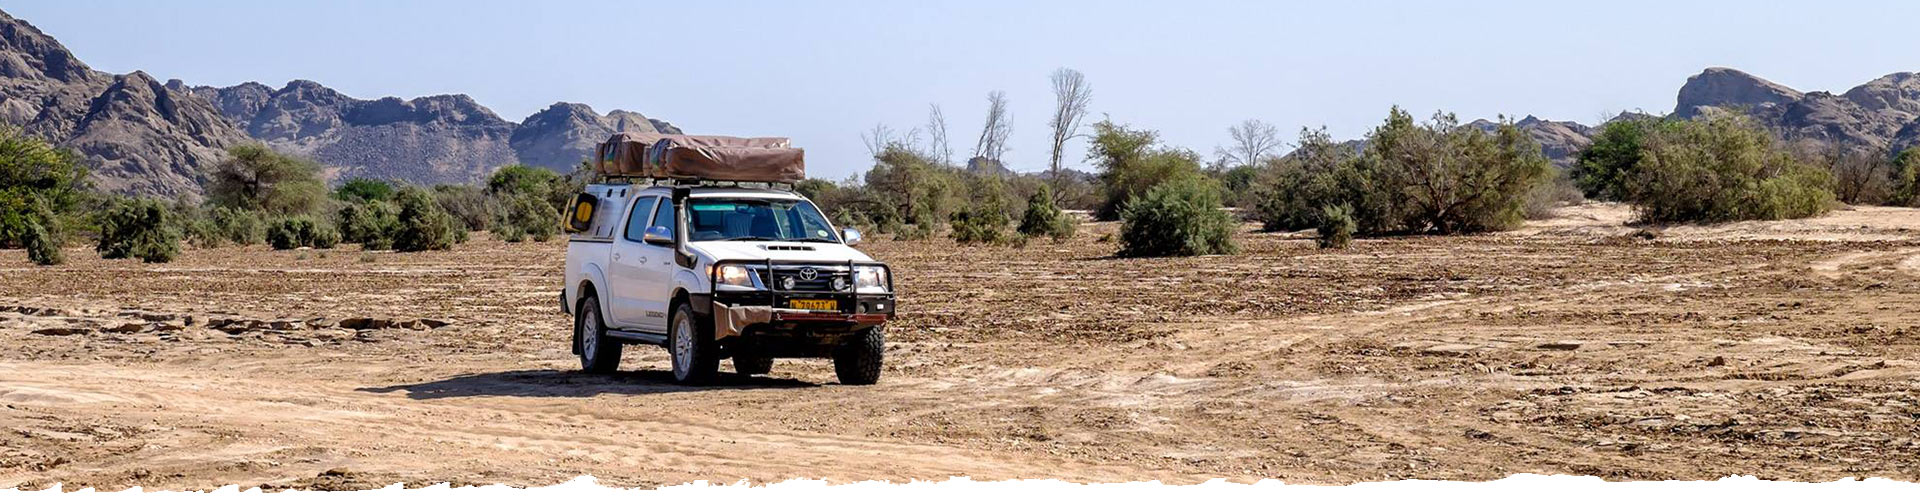 Explore-Botswana-All-Vehicles-slider